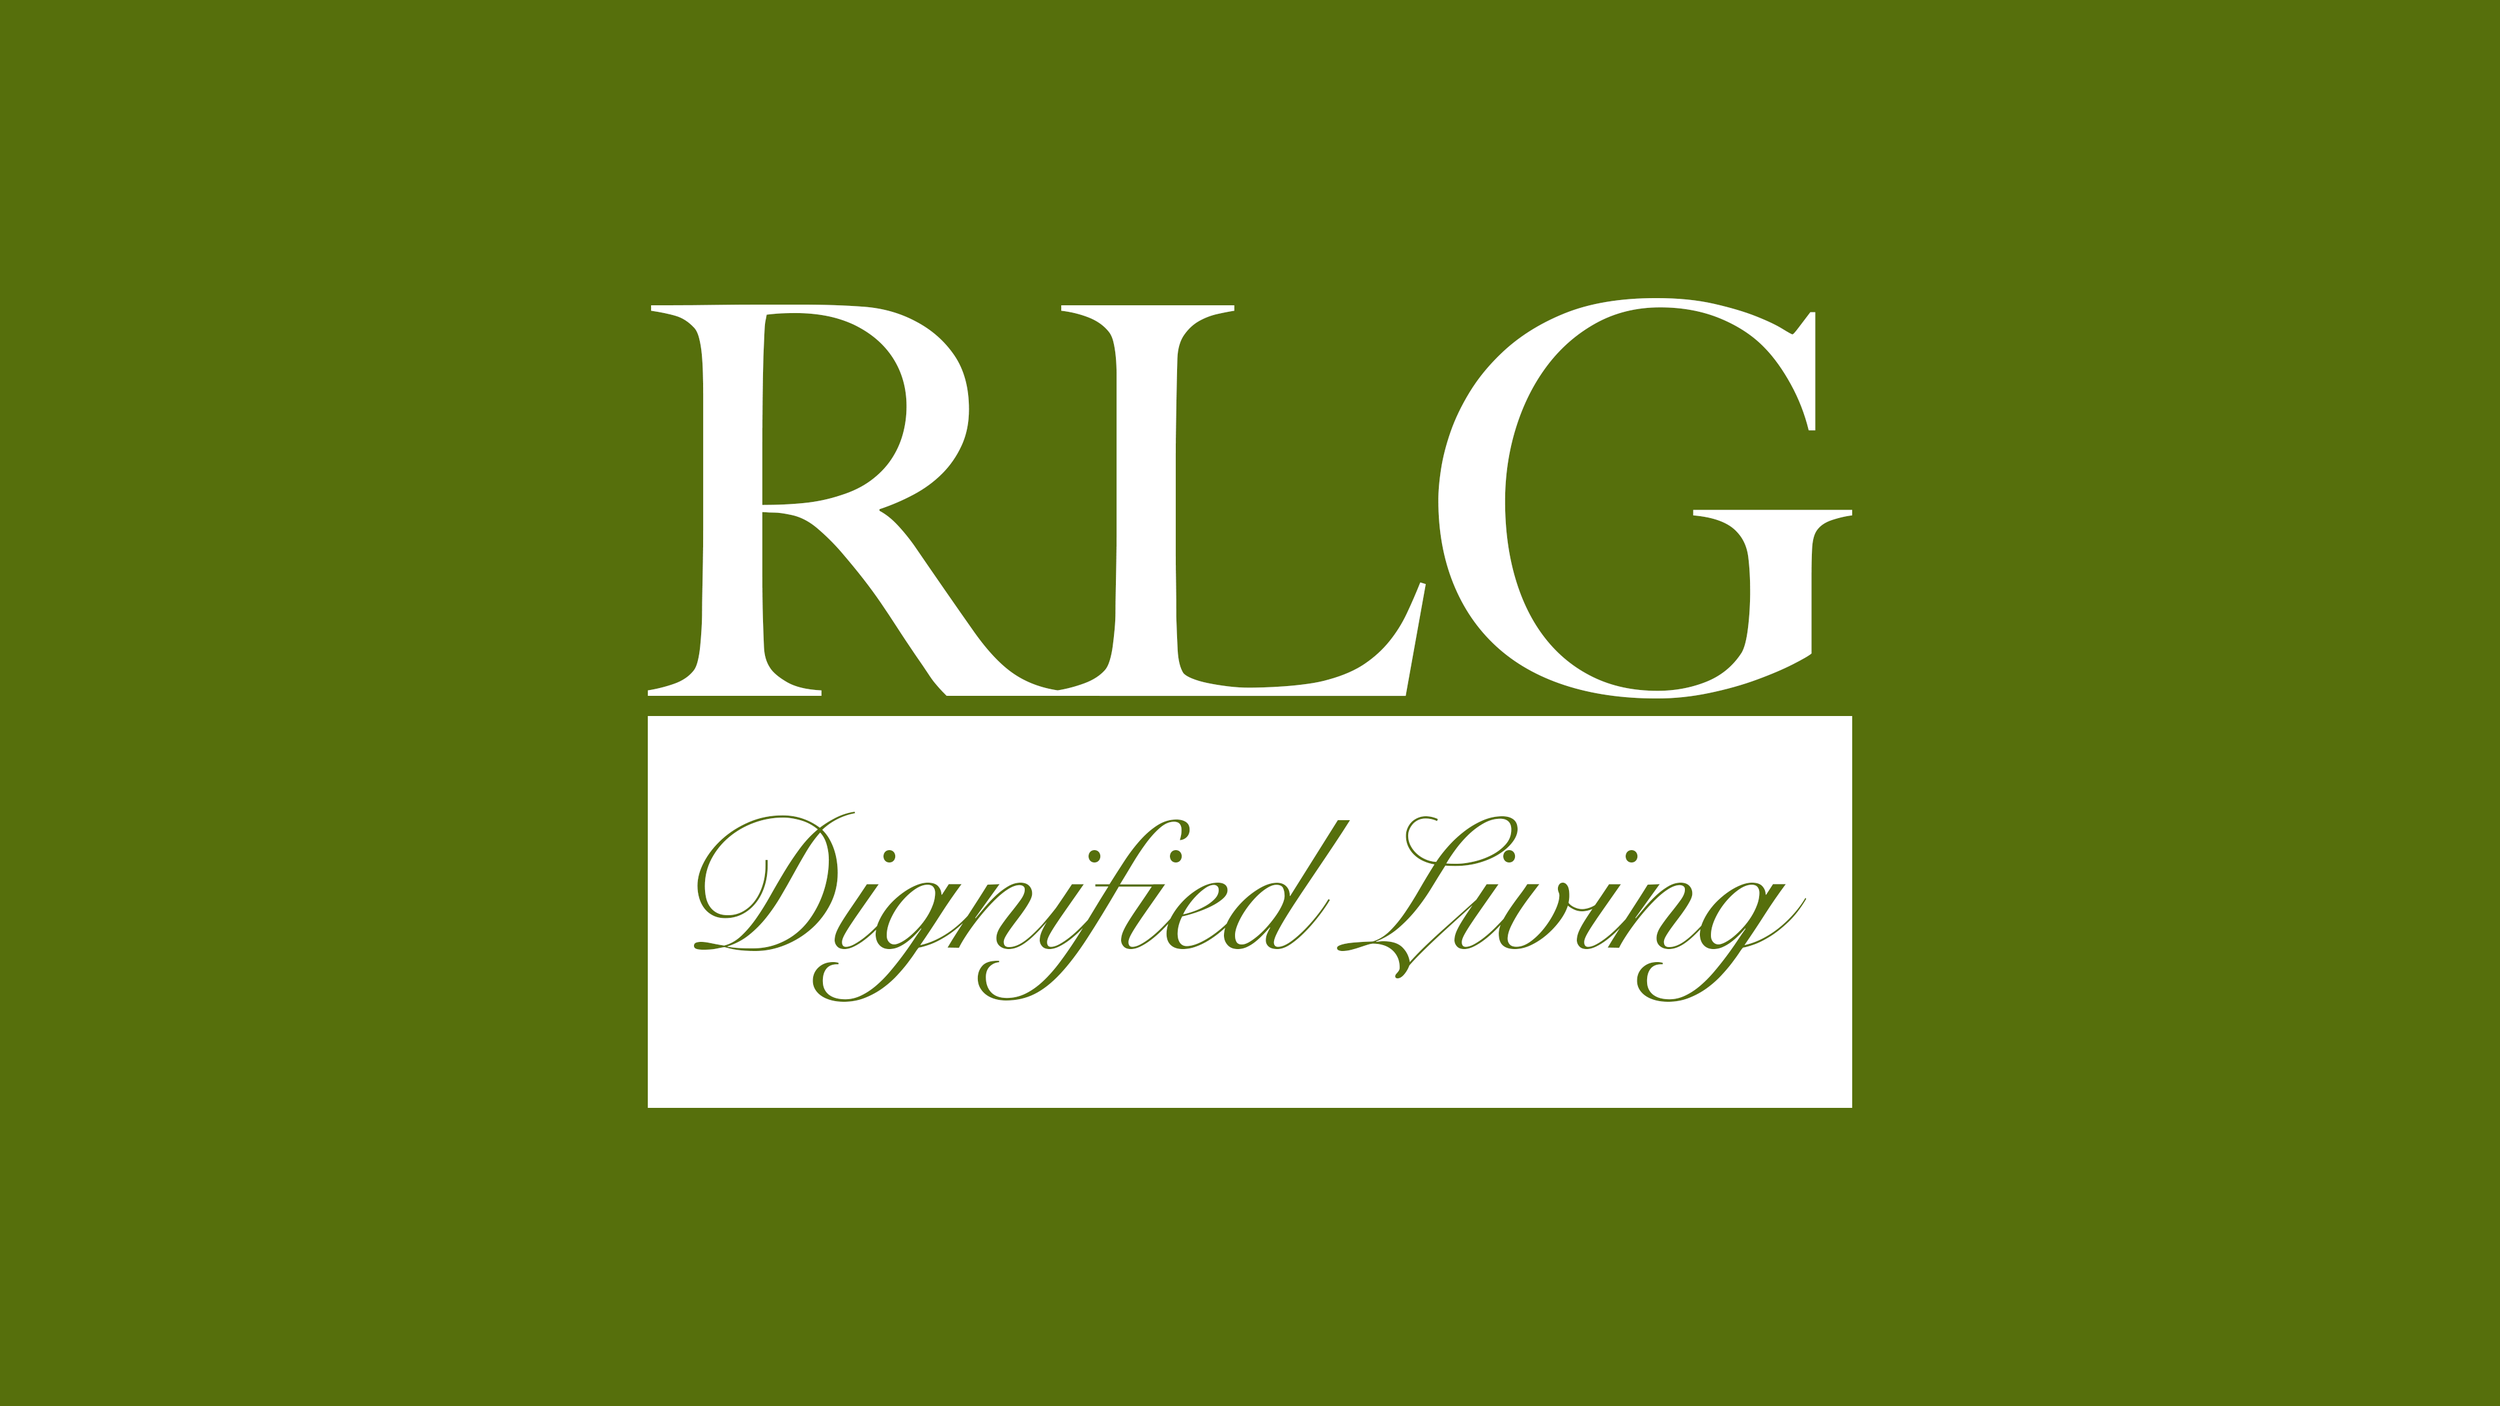 RLG Dignified Living